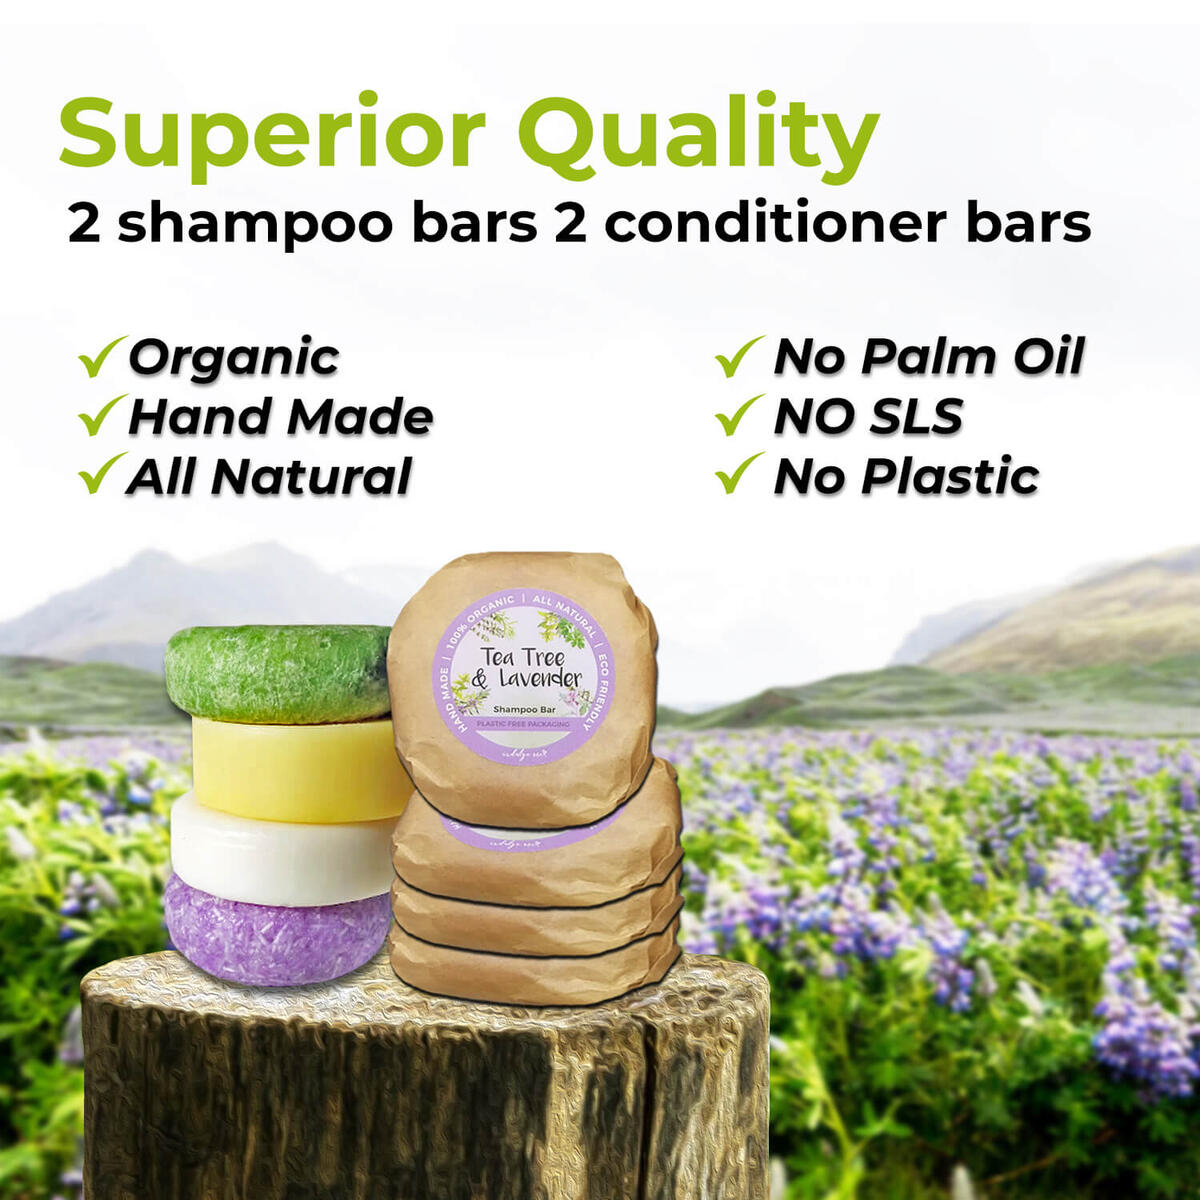 Solid Shampoo and Conditioner Bar - Eco Friendly Hair Care, Plastic FREE Packaging